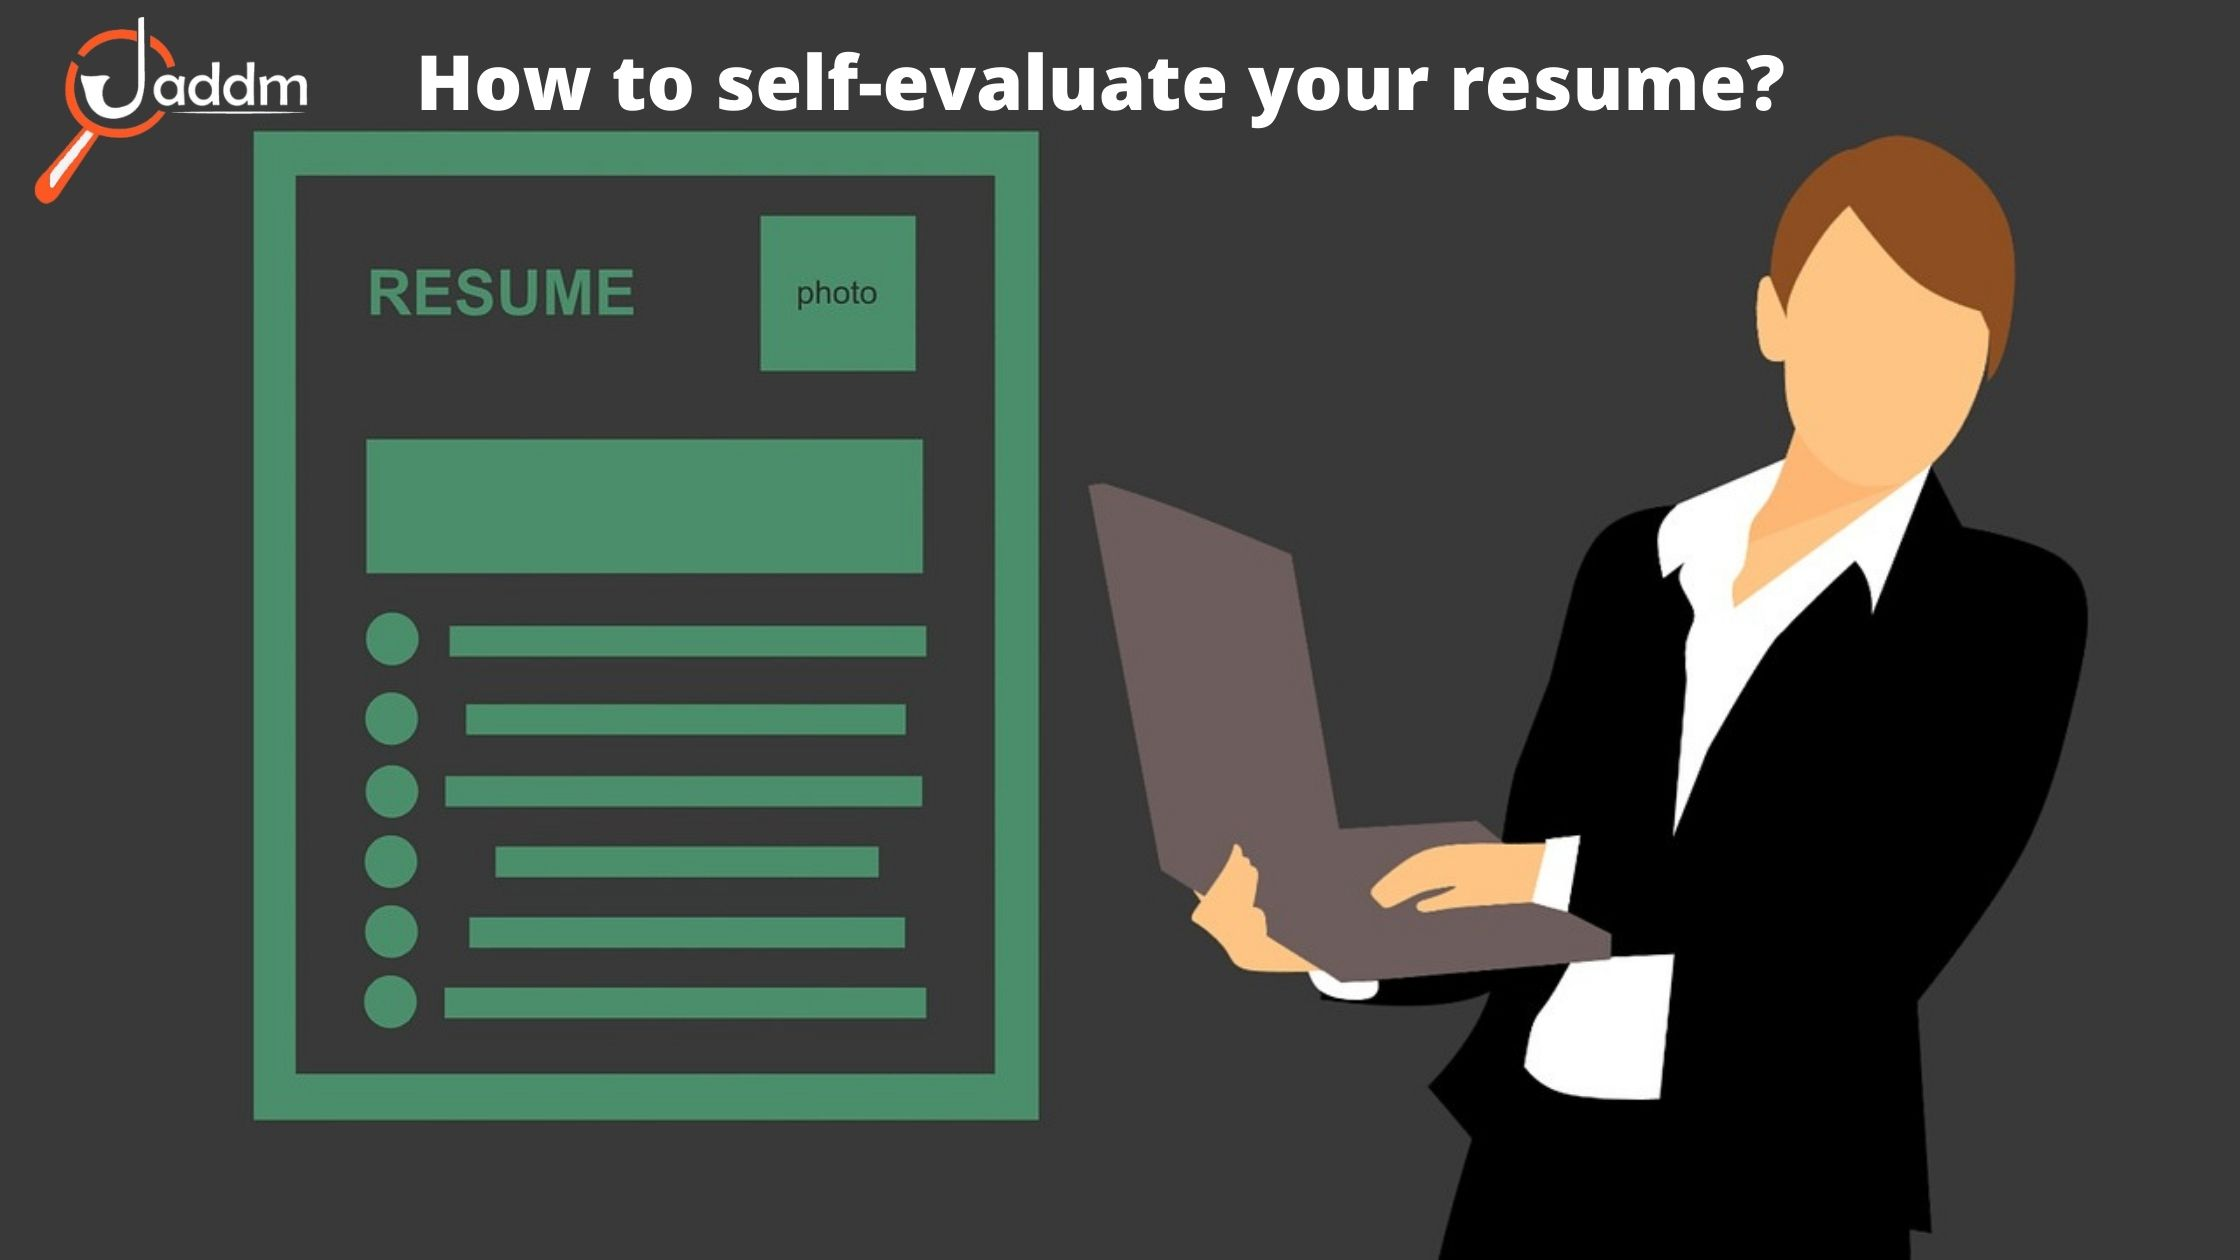 self-evaluation your resume